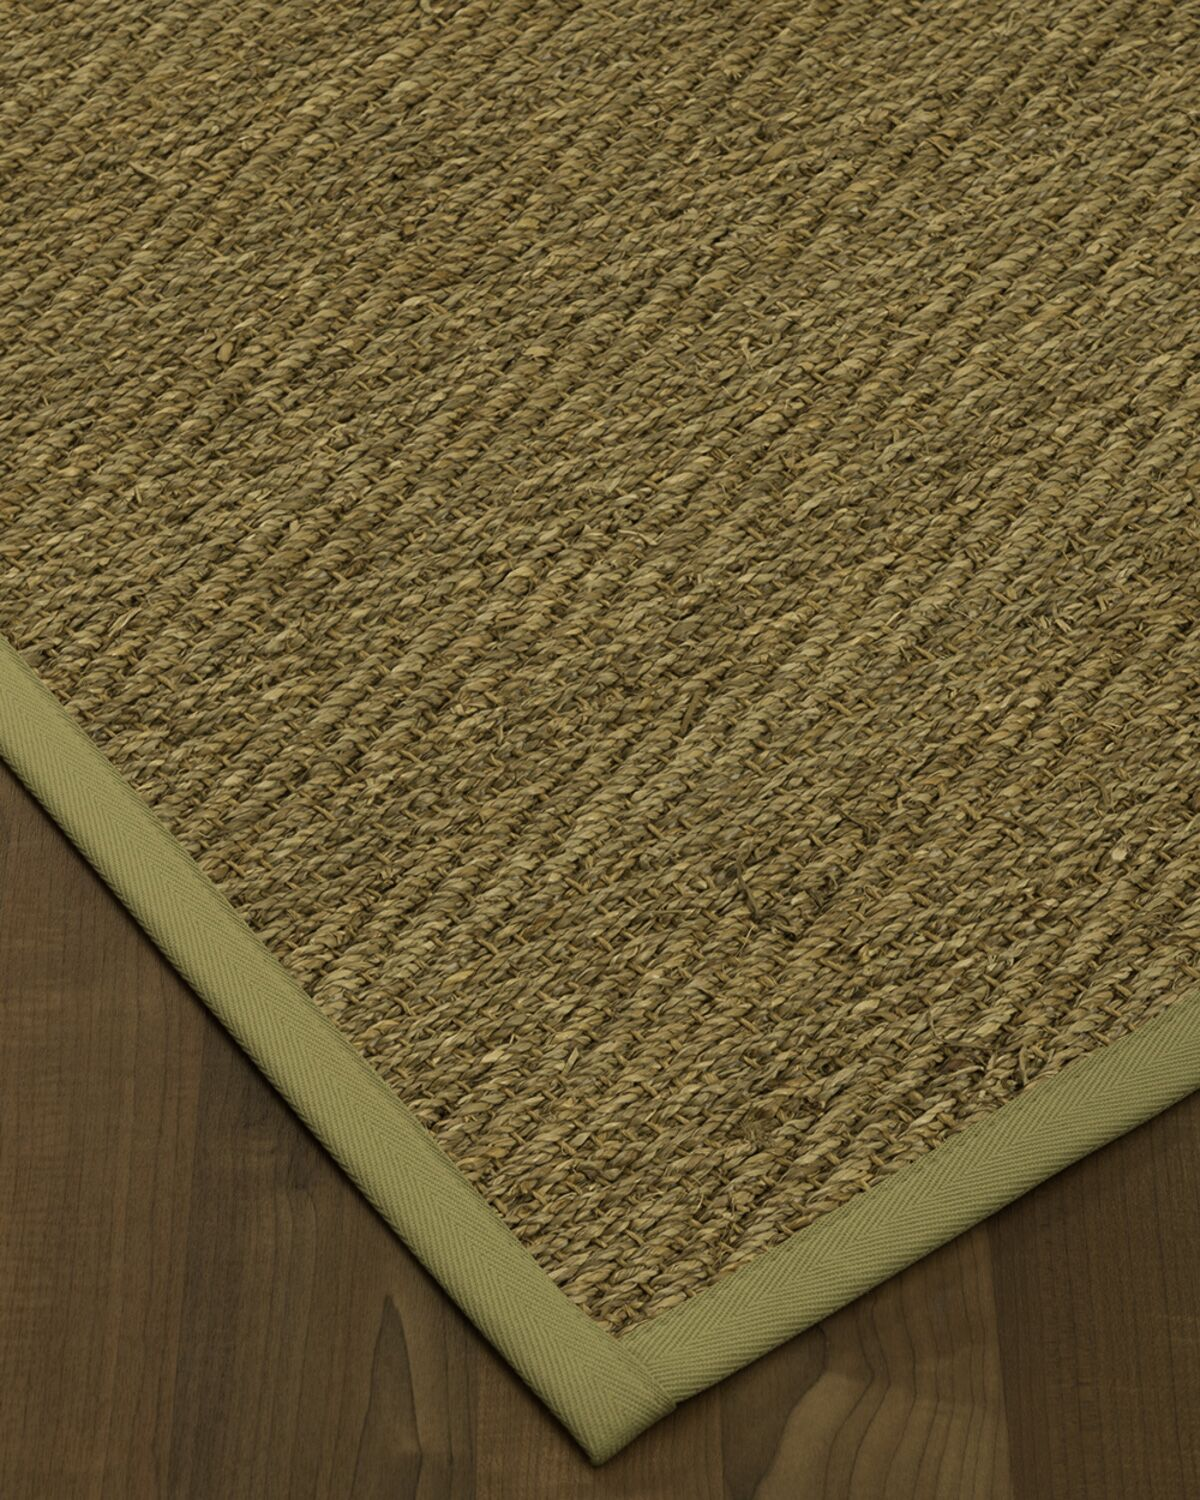 Chavarria Border Hand-Woven Beige/Sand Area Rug Rug Size: Rectangle 5' x 8', Rug Pad Included: Yes